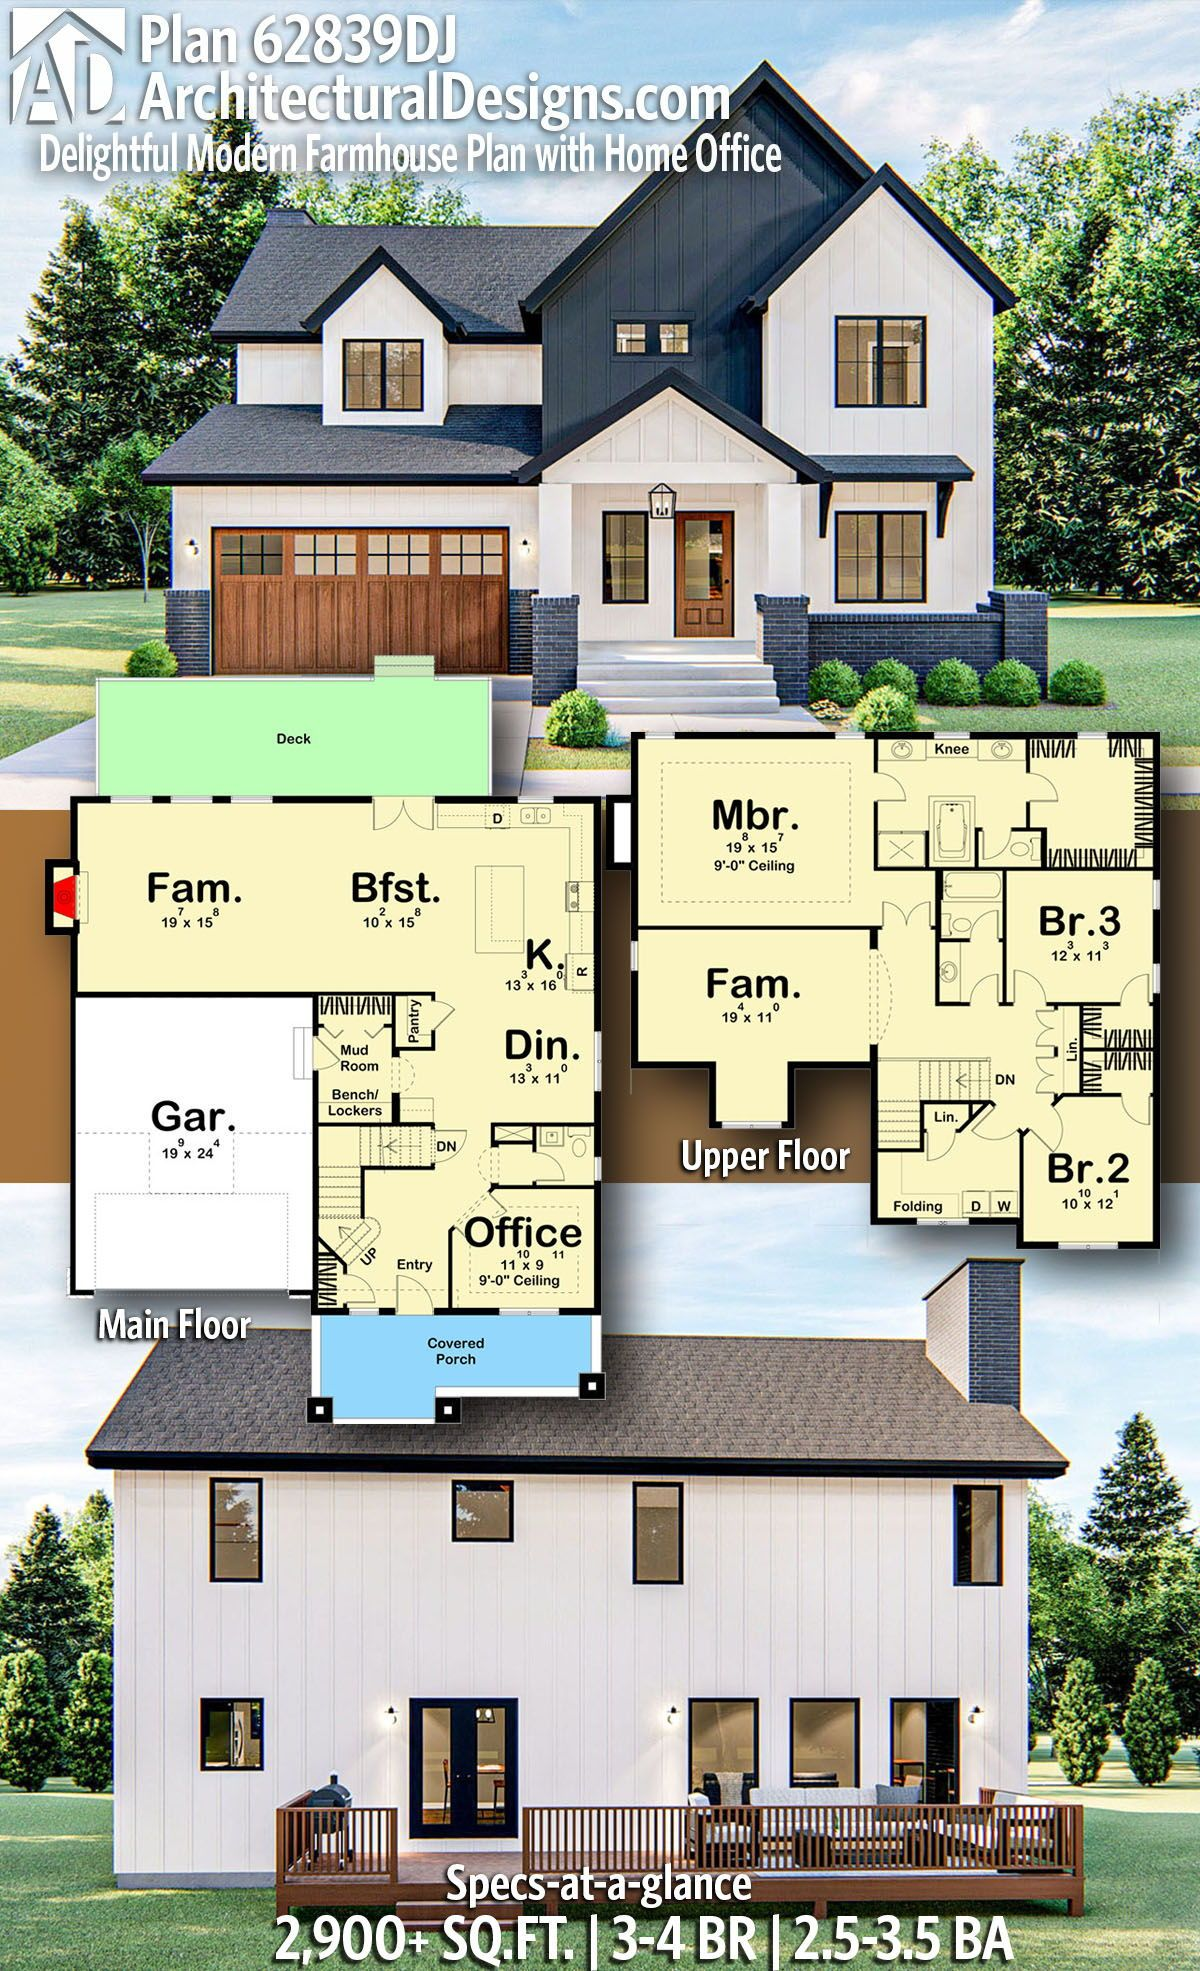 Plan 62839dj Delightful Modern Farmhouse Plan With Home Office In 2020 Modern Farmhouse Plans Farmhouse Plans Sims House Plans